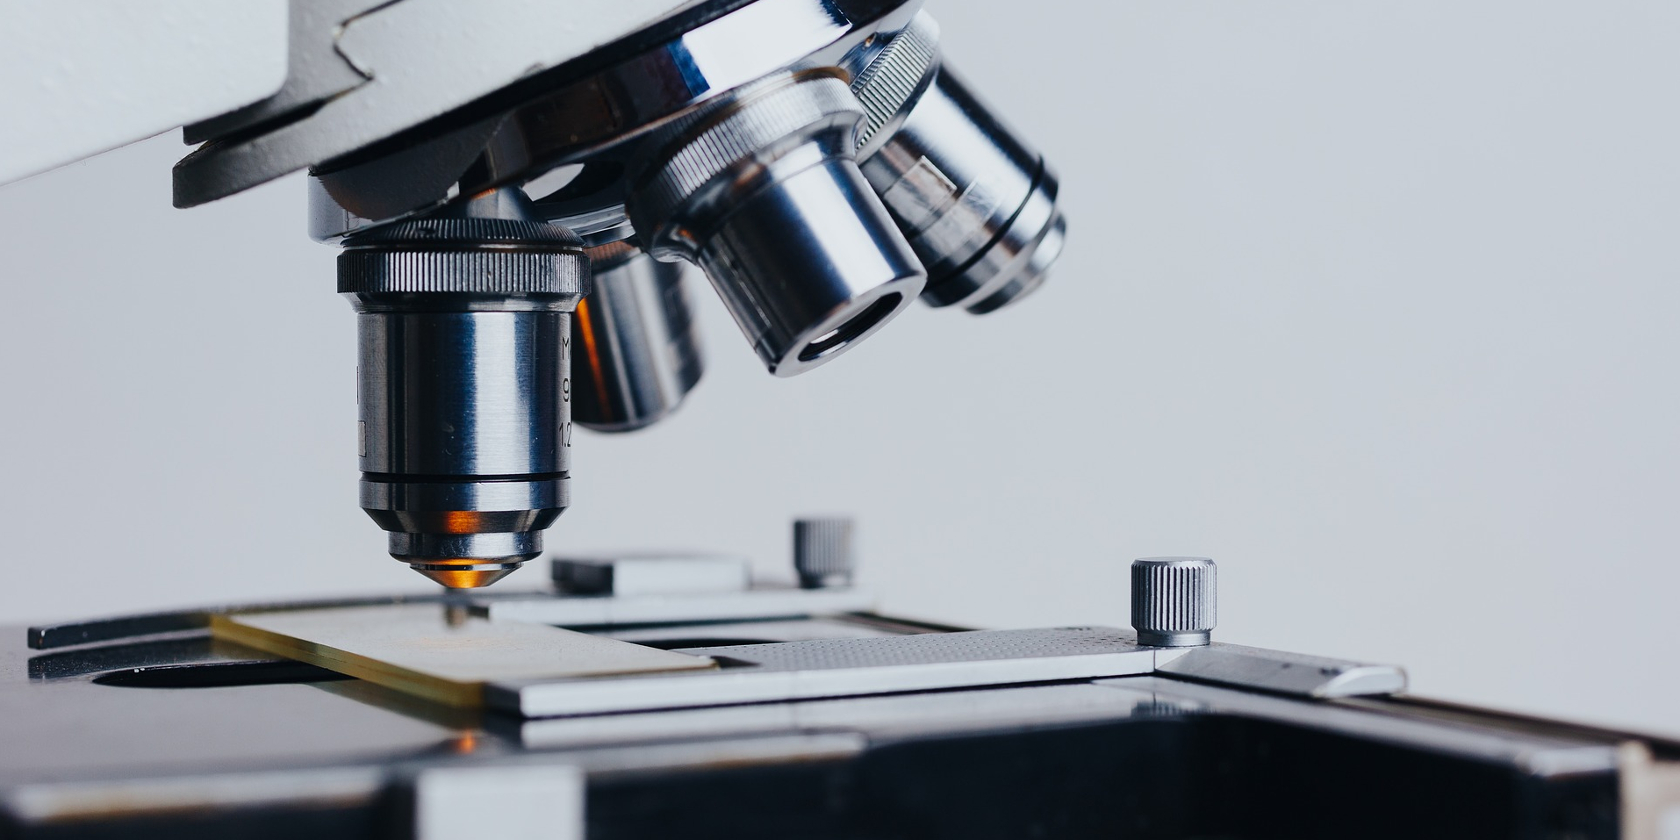 JSR Will Buy Swiss Selexis to Expand Biopharma Business